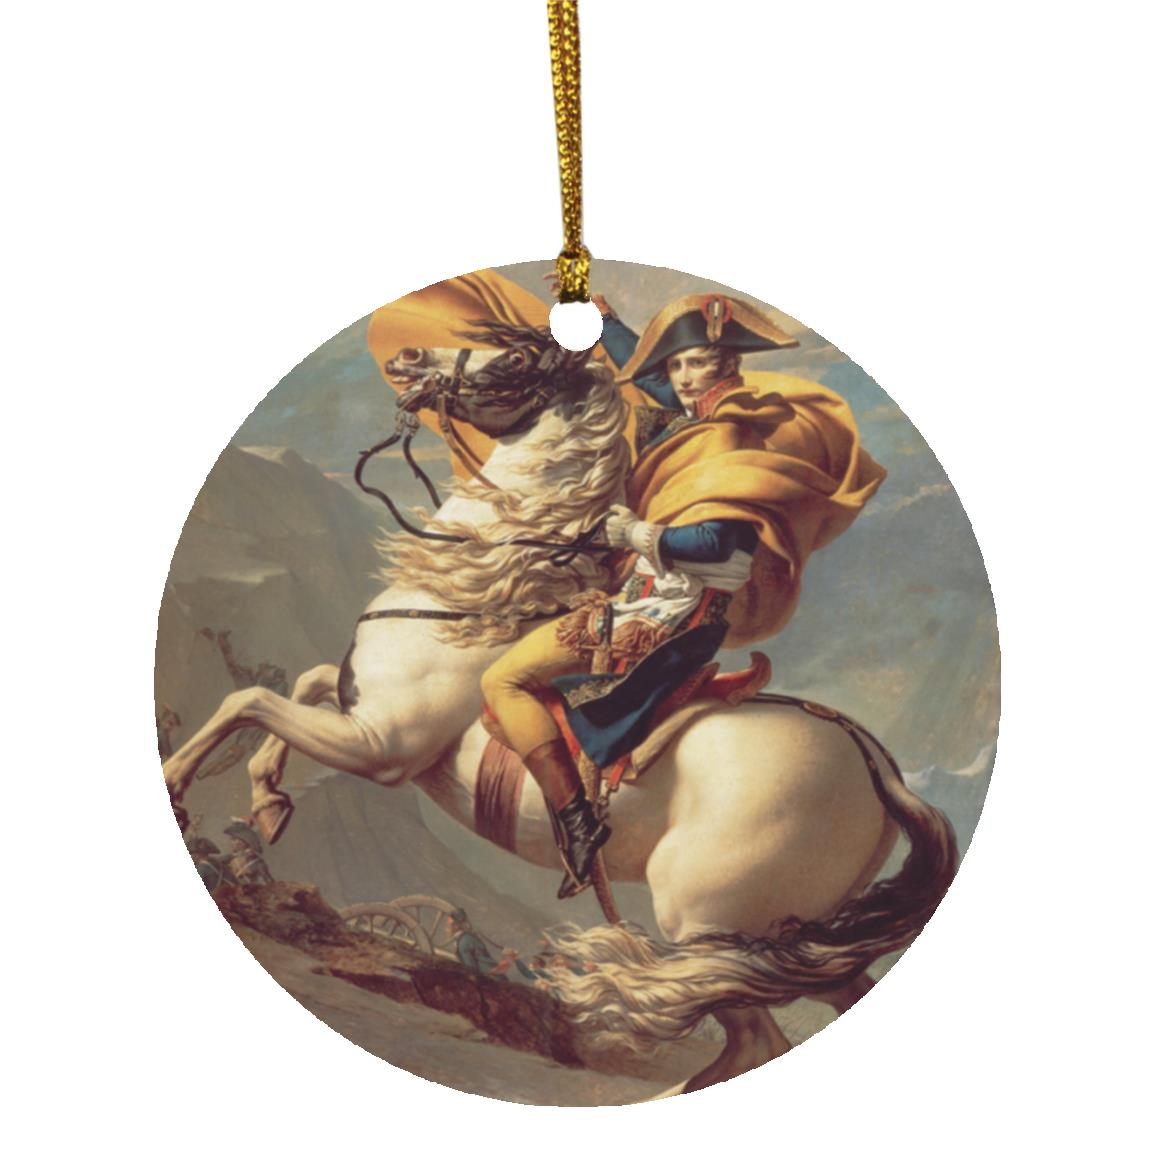 Napoleon Crossing the Alps Christmas Ornament - Napoleonic Impressions